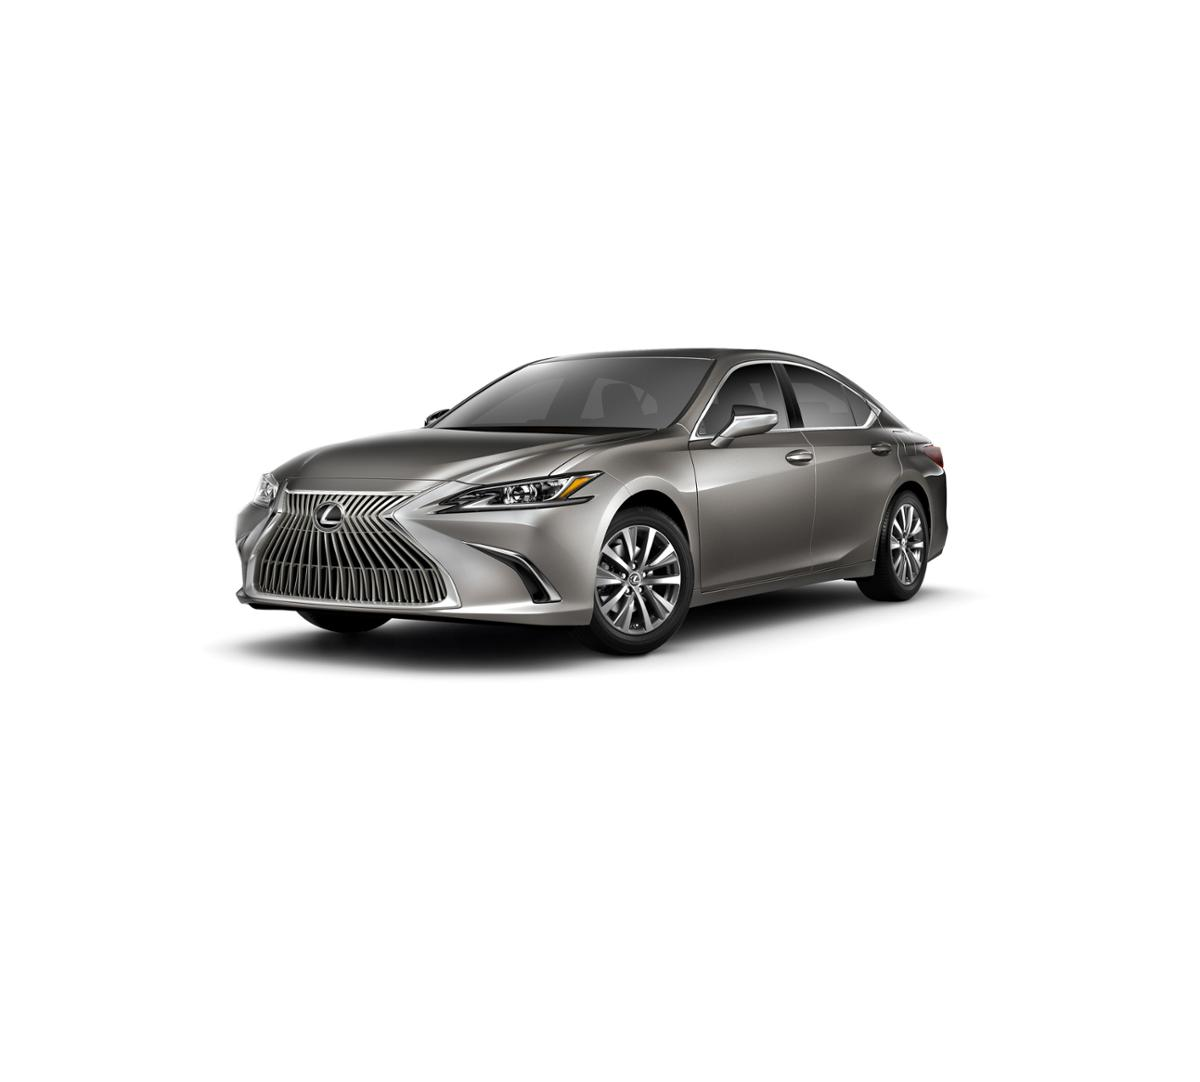 2019 Lexus ES 350 Vehicle Photo in Oakhurst, NJ 07755